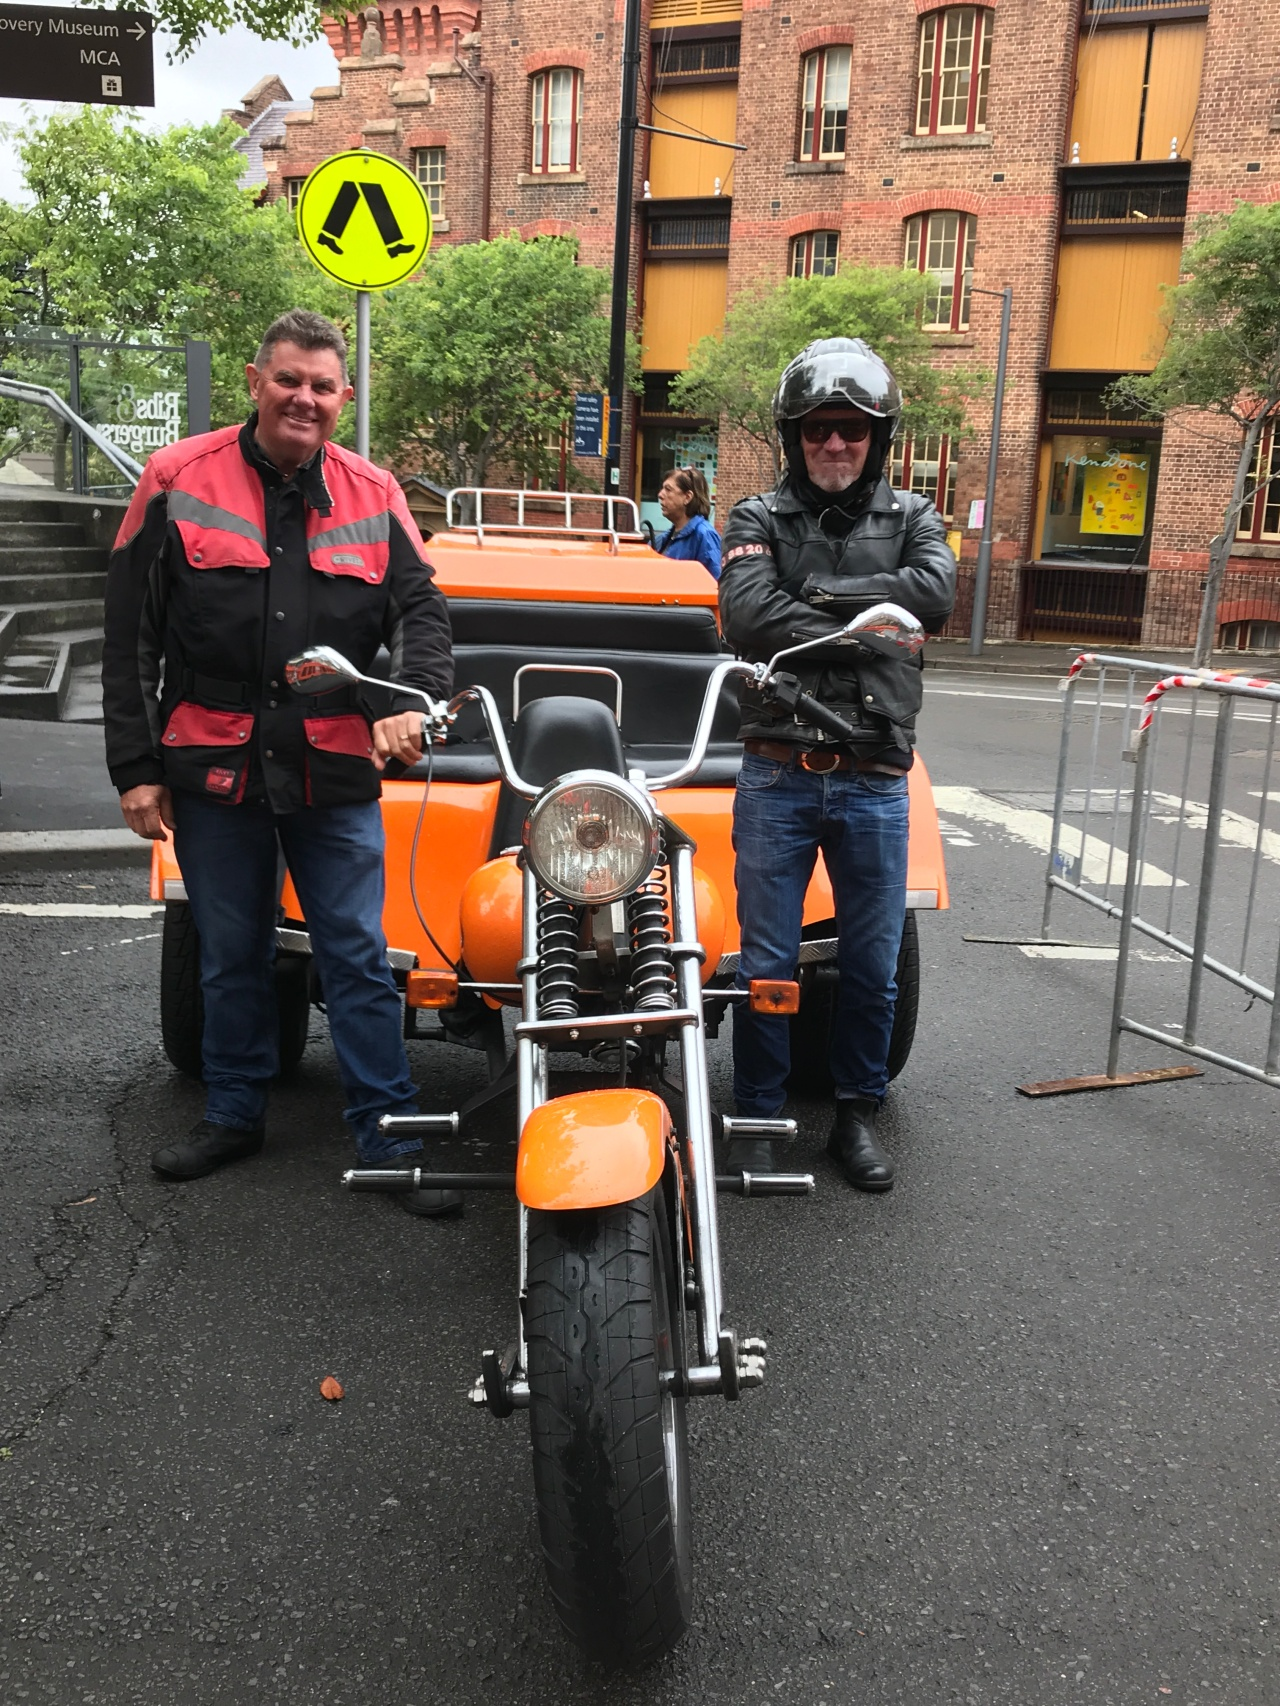 Riding easy on a Harley Trike around Sydney